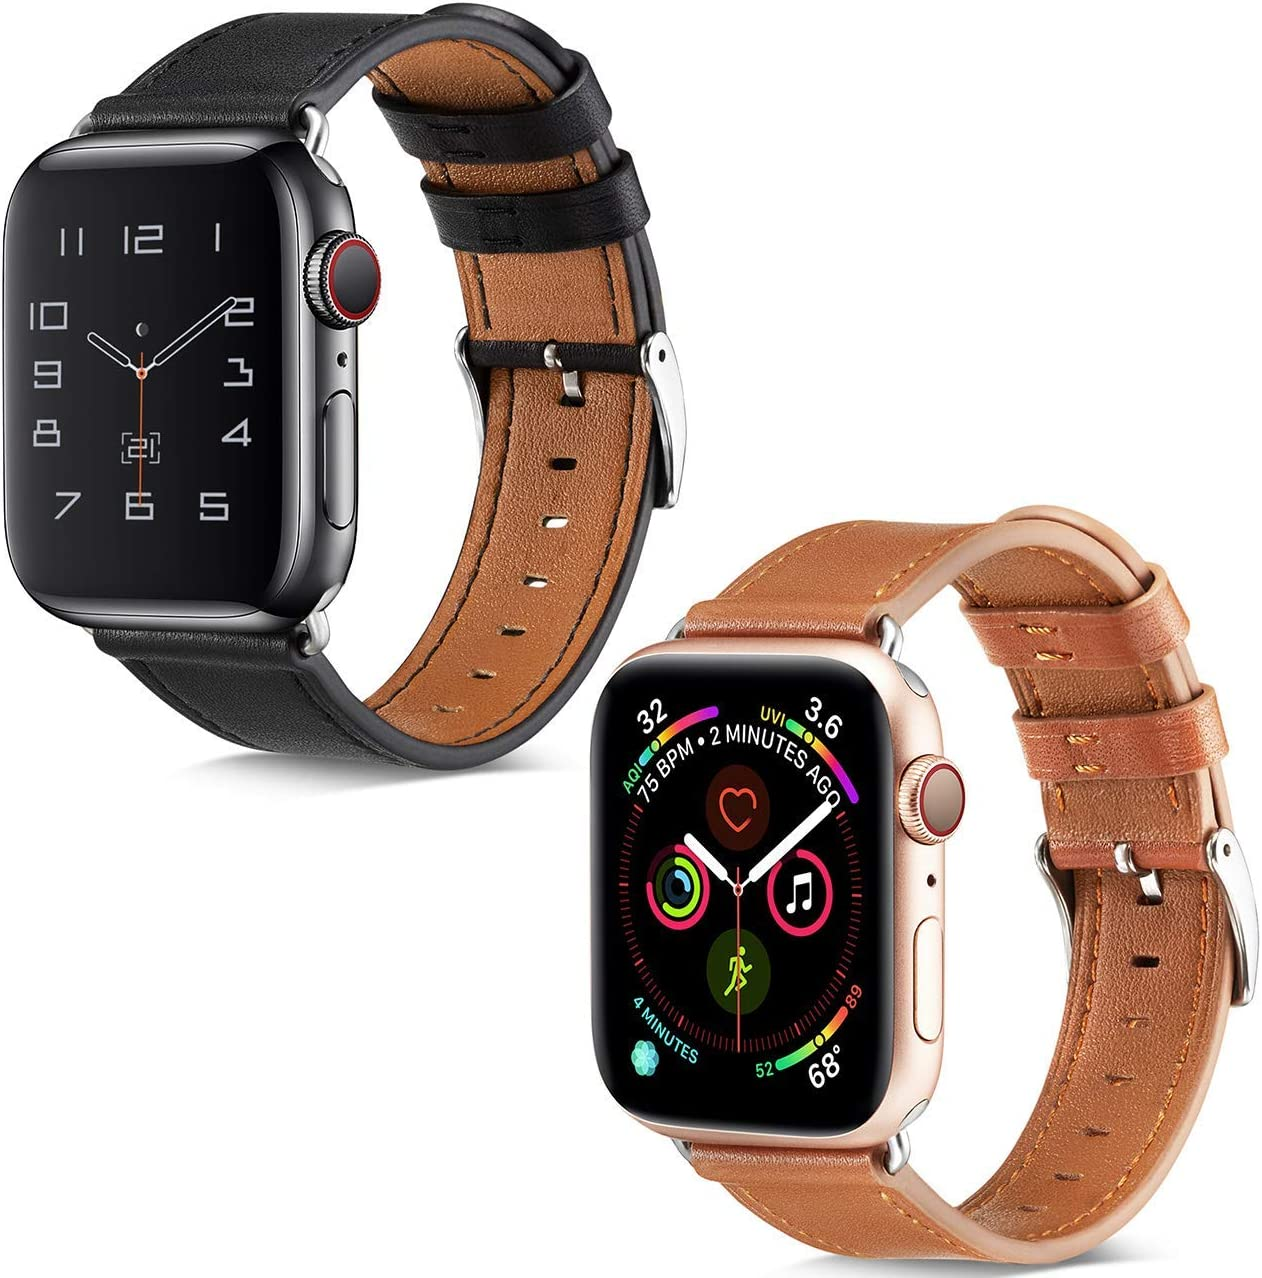 BELONGME Compatible with Apple Watch Band 44mm 42mm Black & Compatible with Apple Watch Band 44mm 42mm Brown